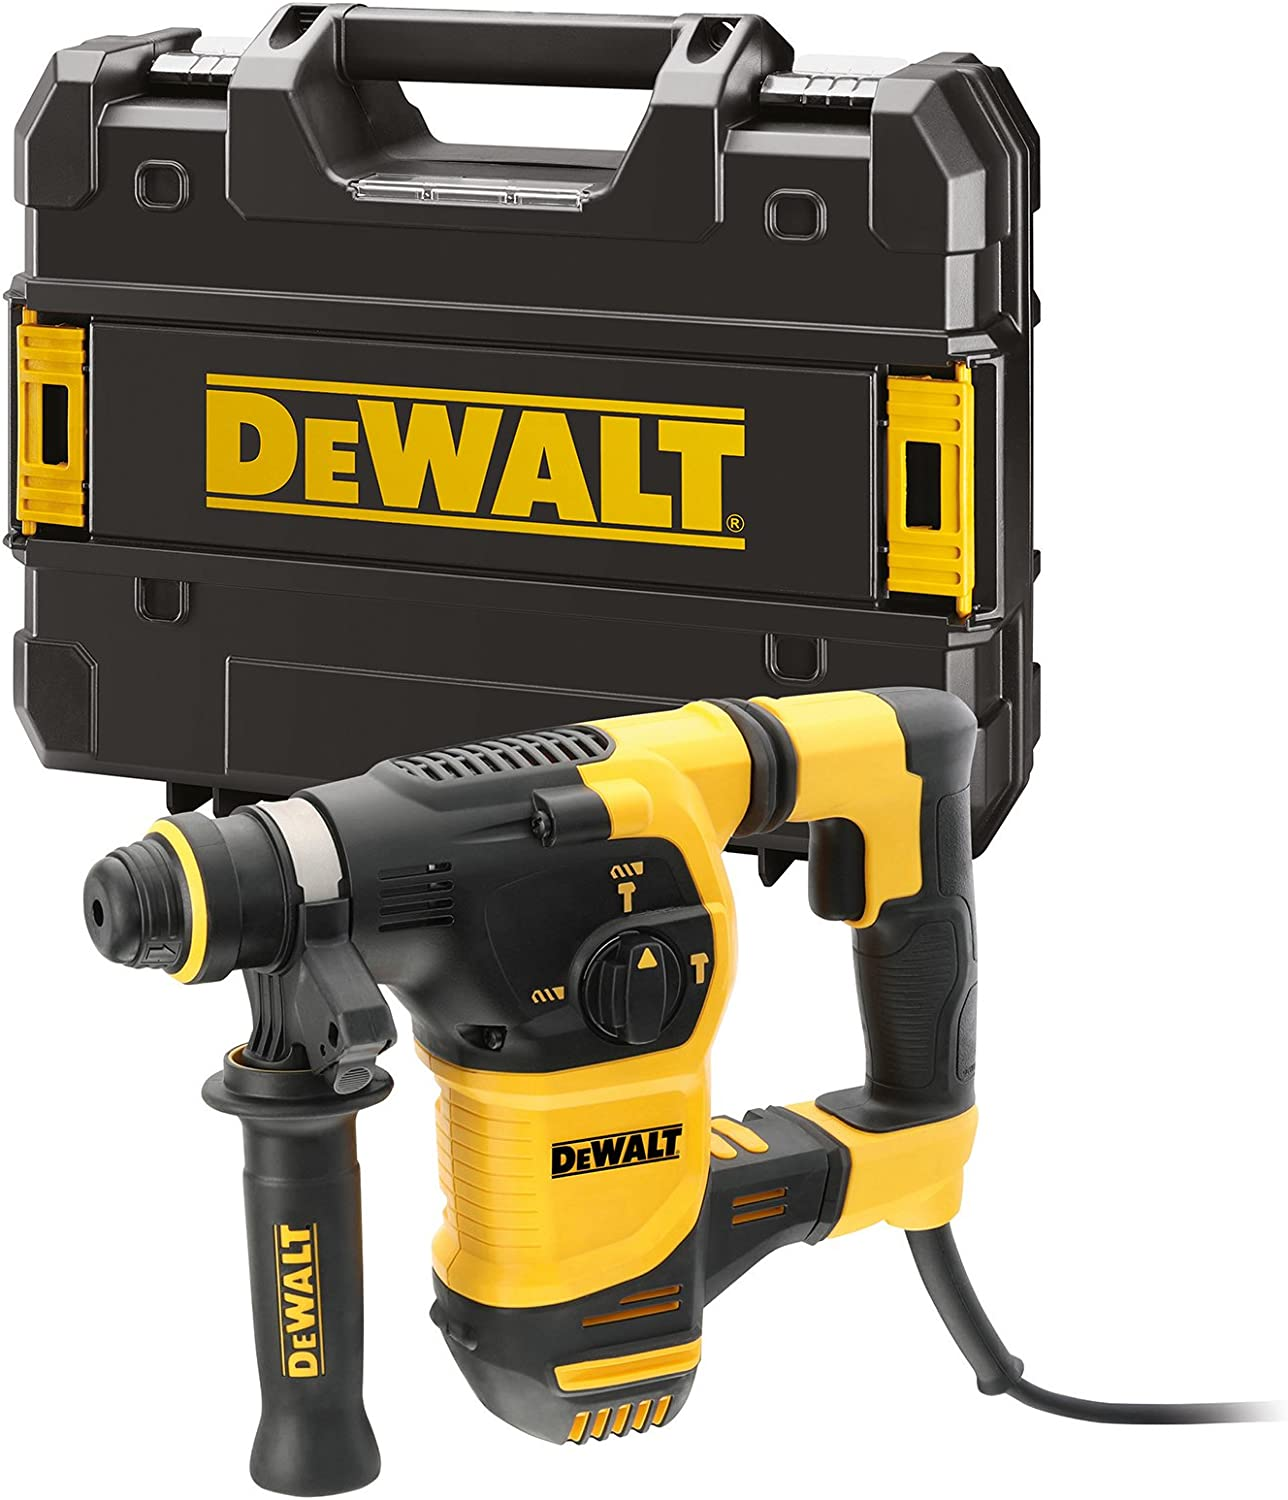 DeWalt D25333K-QS Perforateur burineur SDS-plus 950W - 3.5J - 30mm - 3 Kg - coffret TSTAK